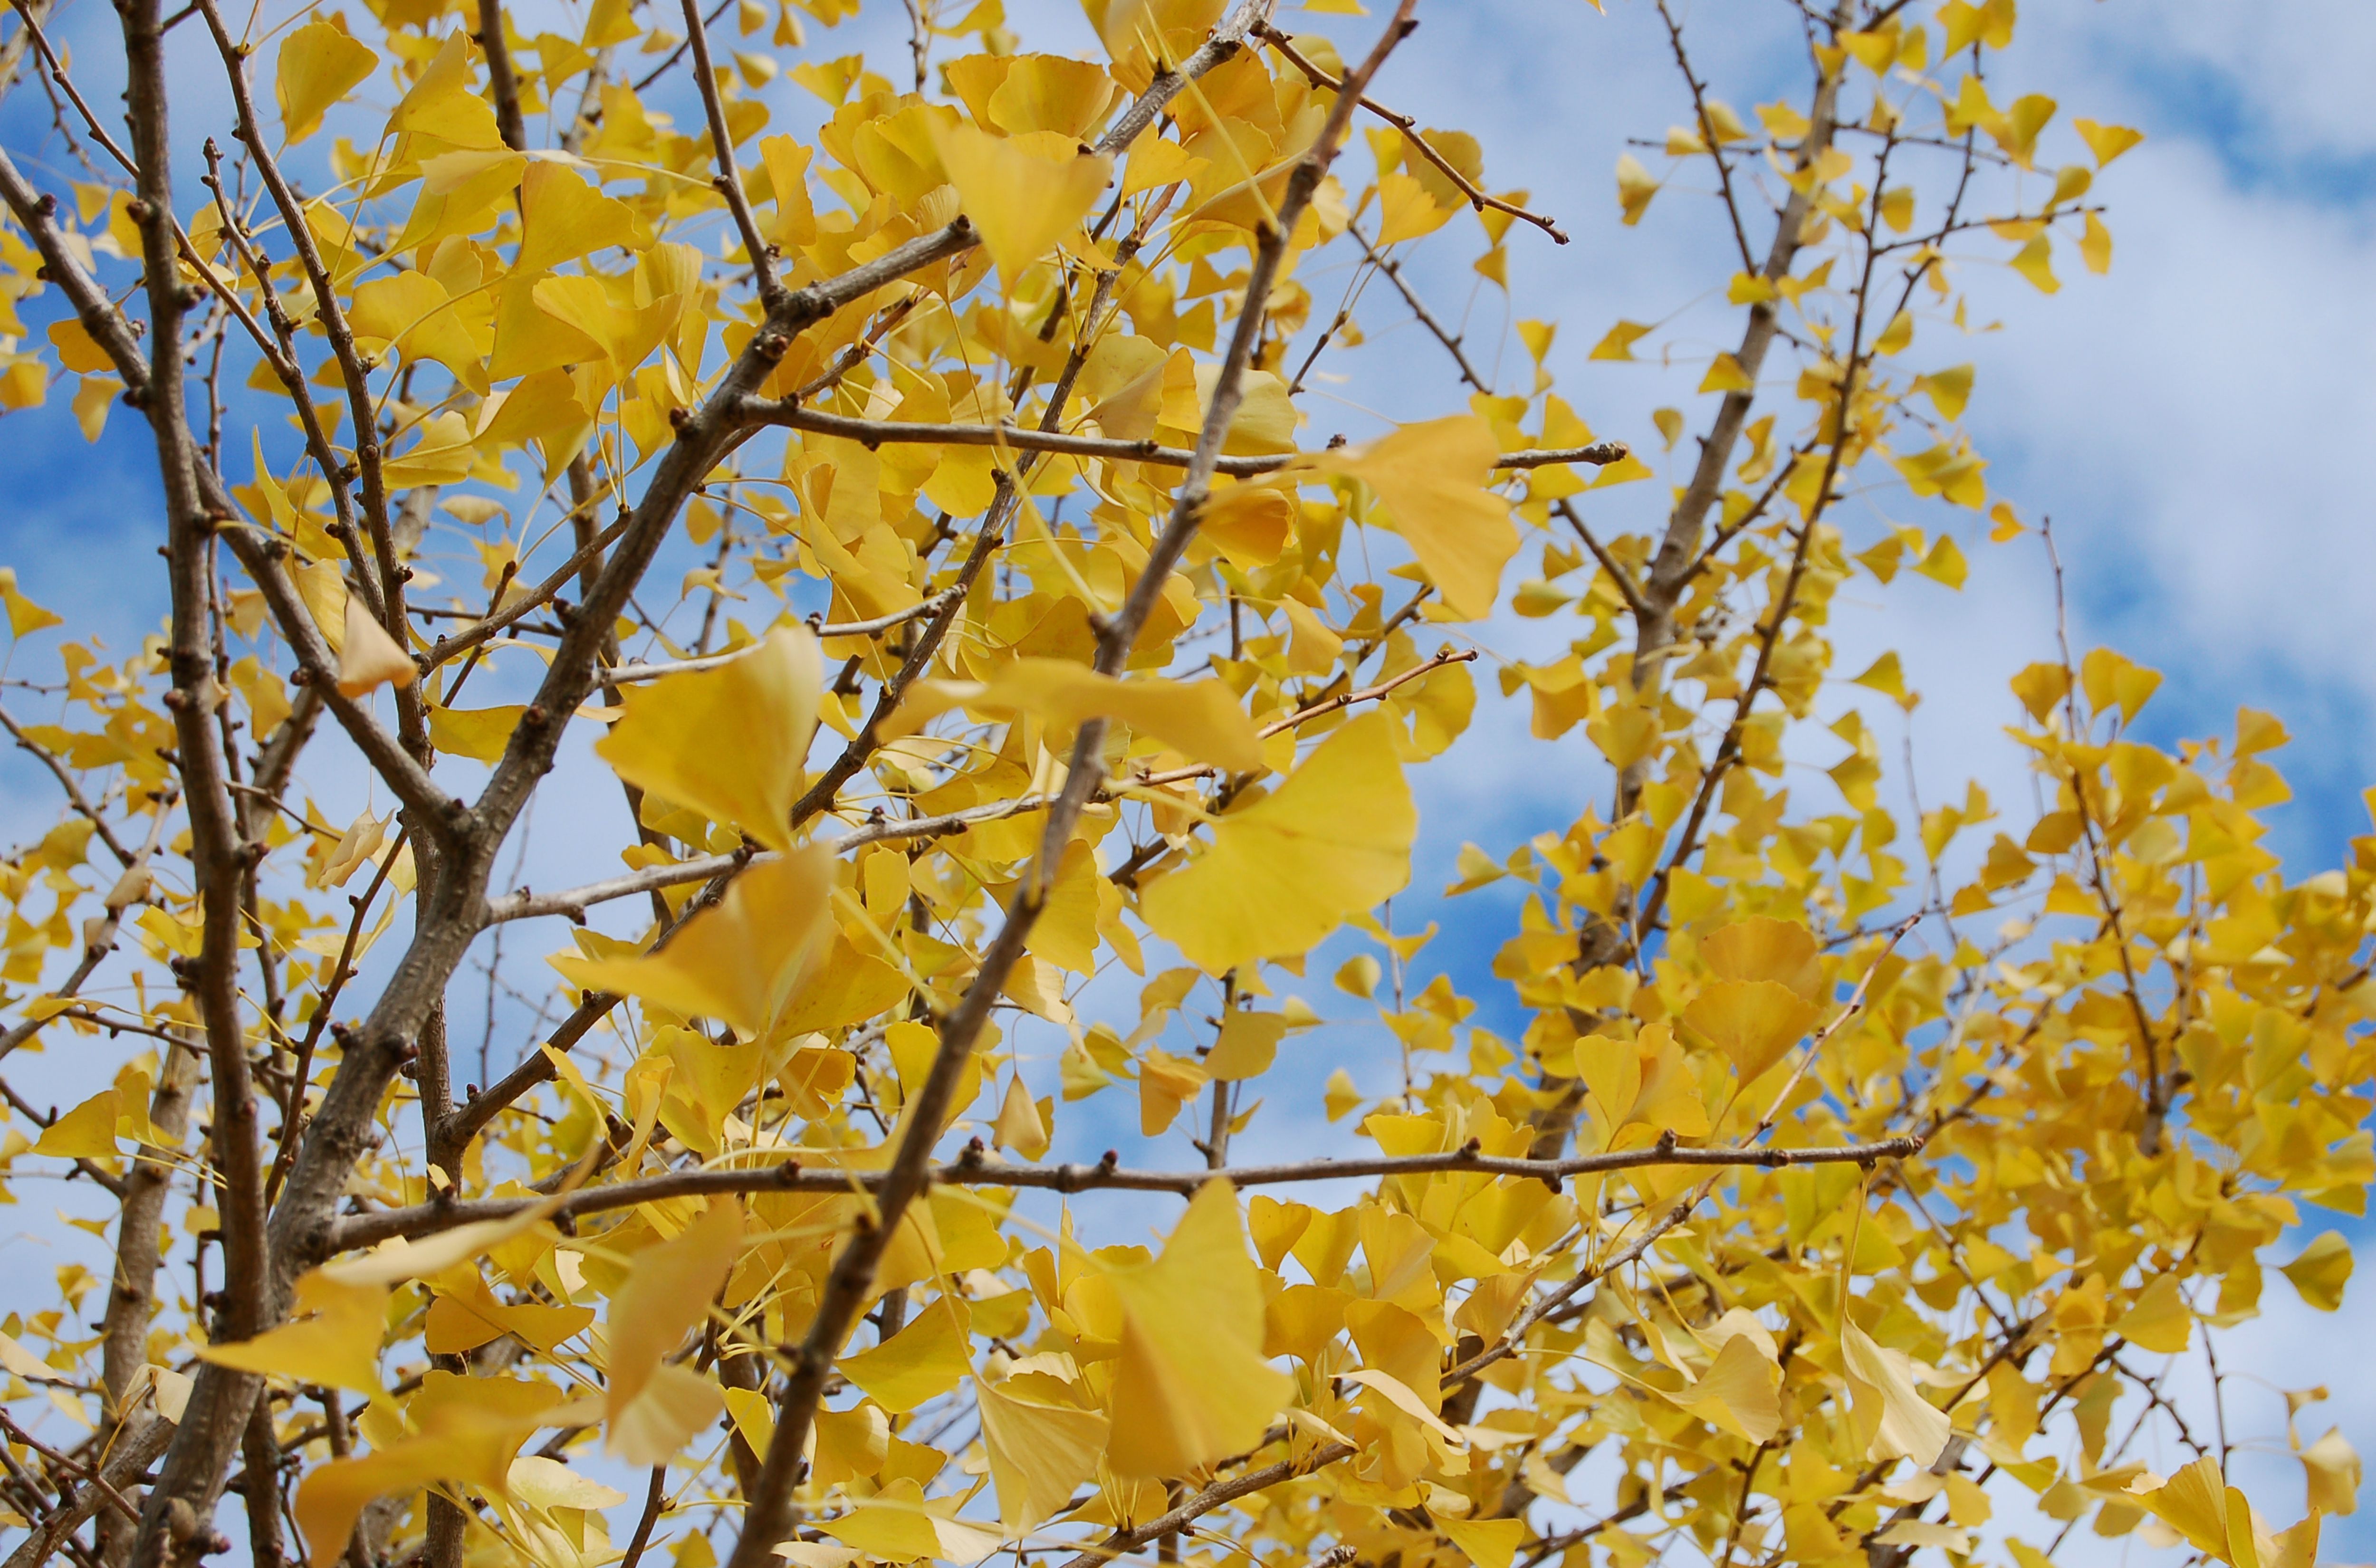 Watering Trees in Fall: Yay or Nay?